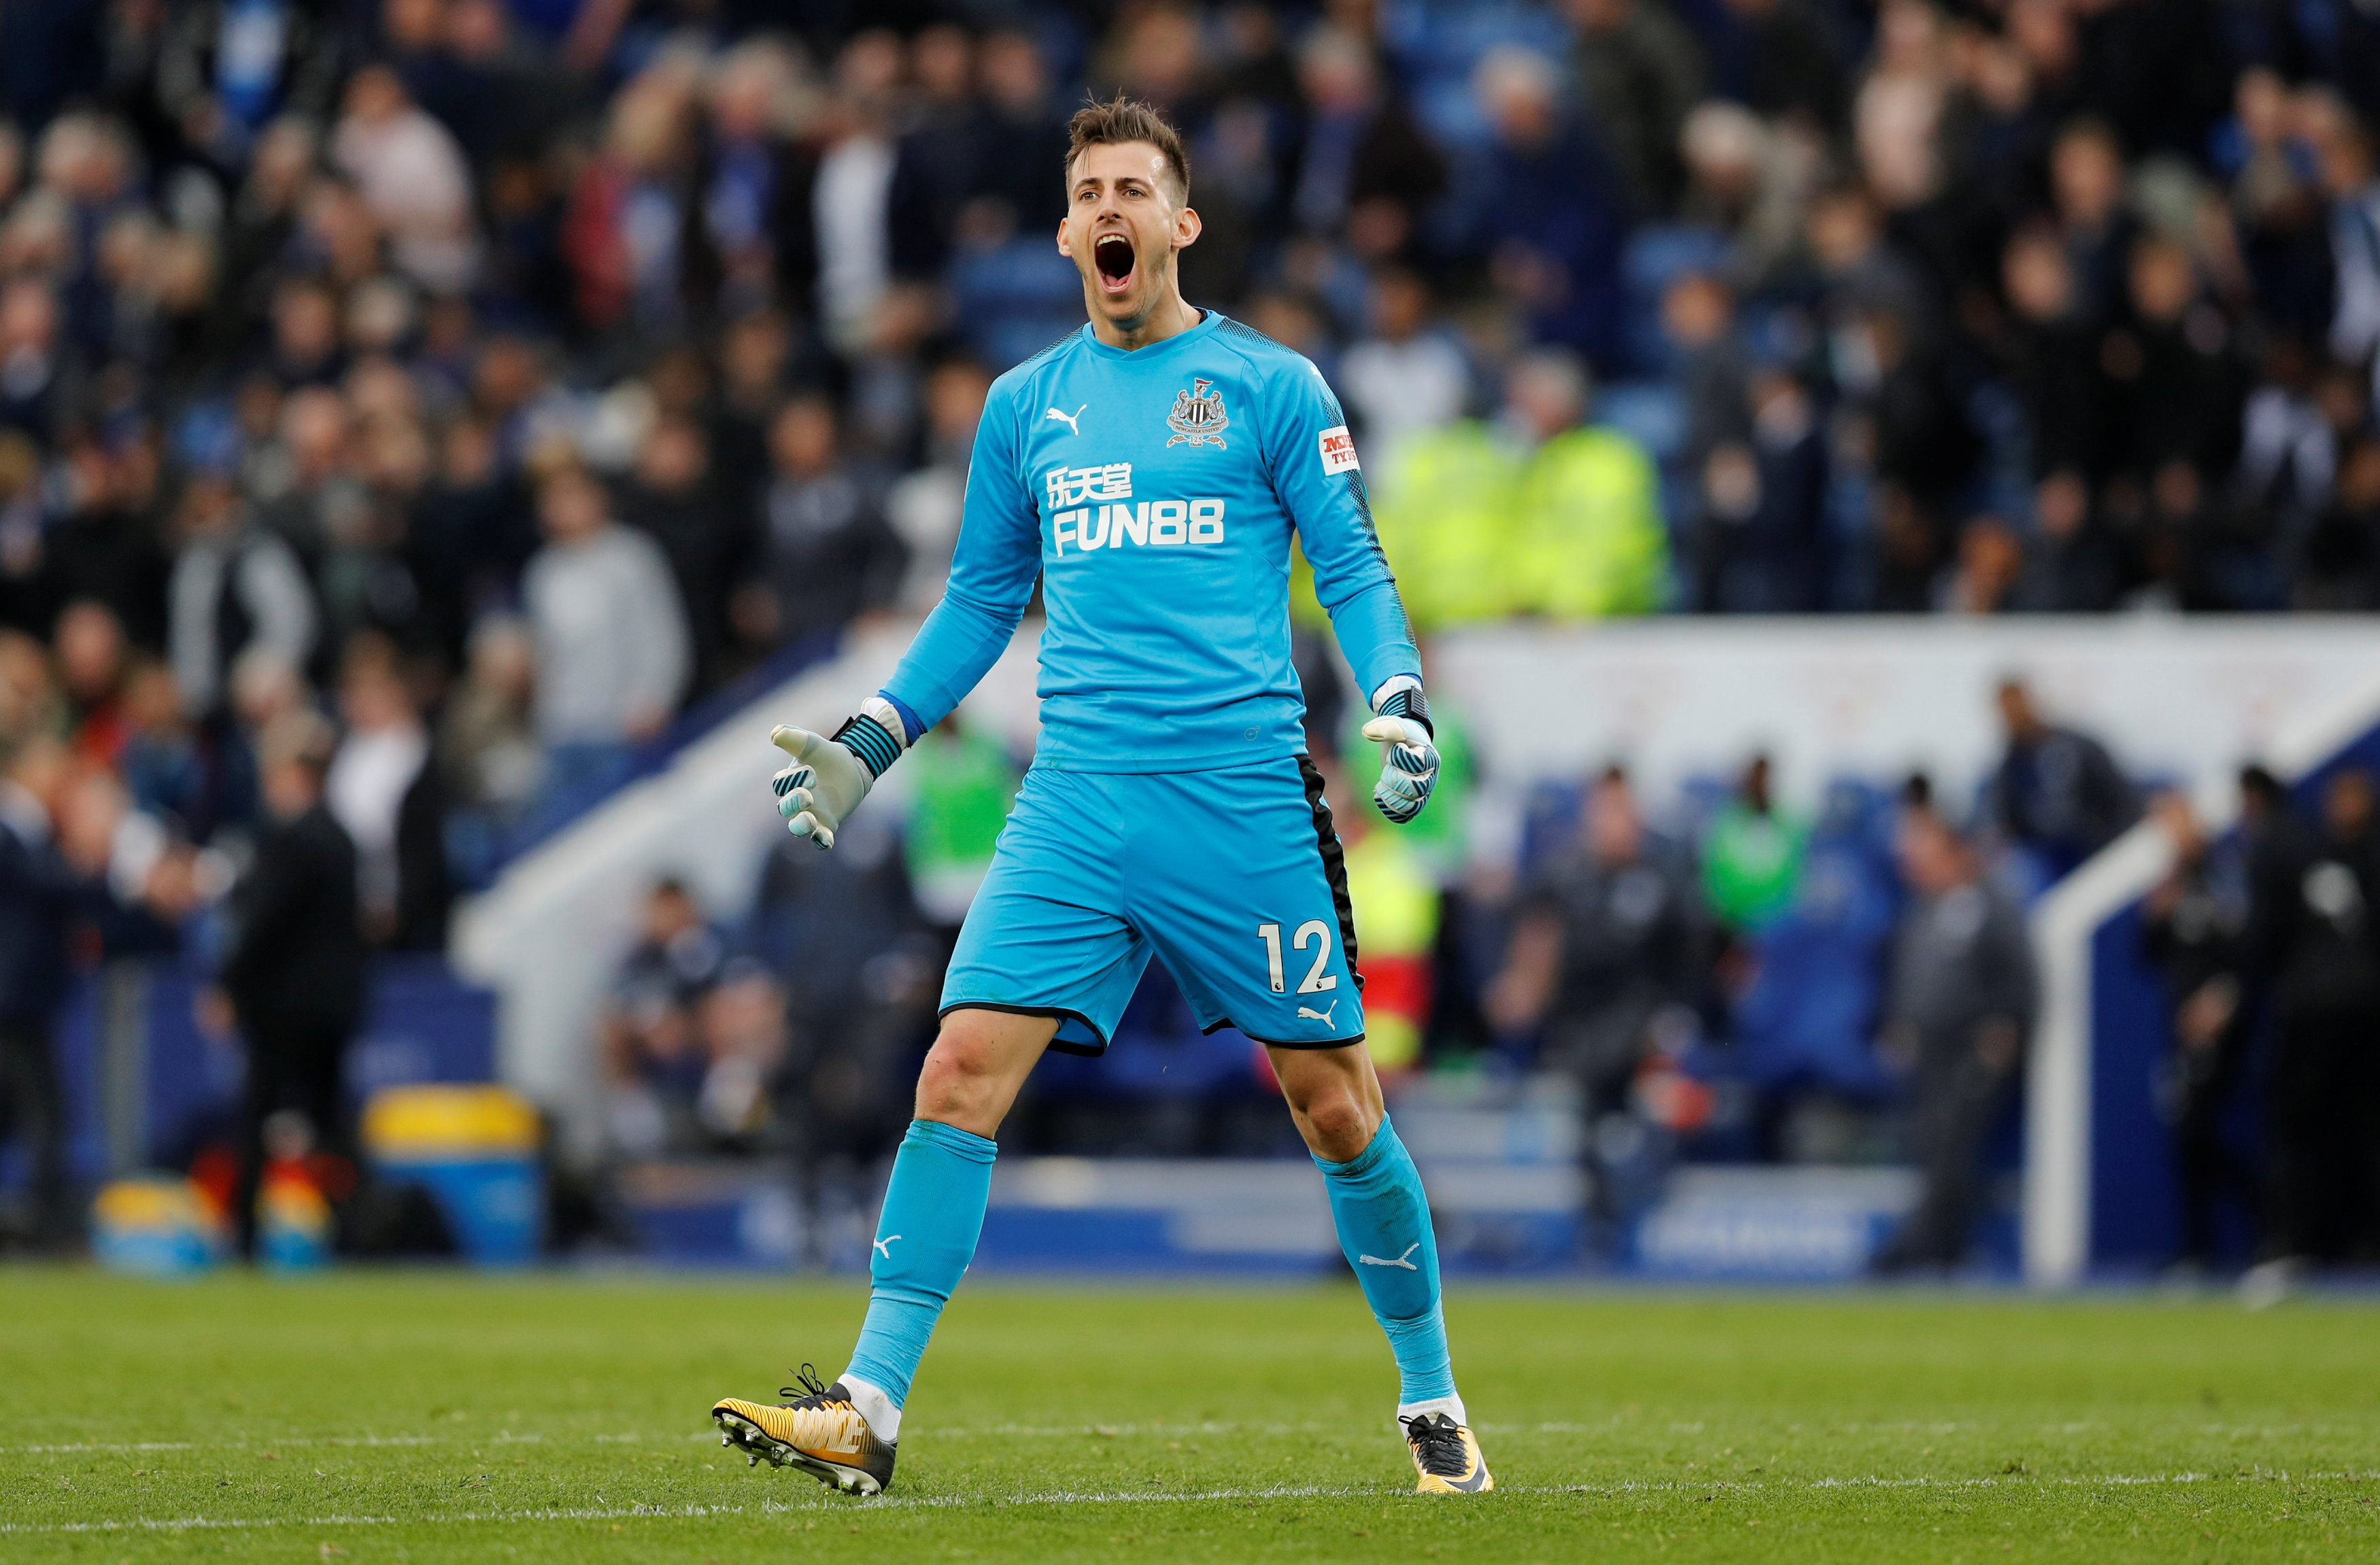 newcastle united fc transfers list 2019- Martin Dubravka